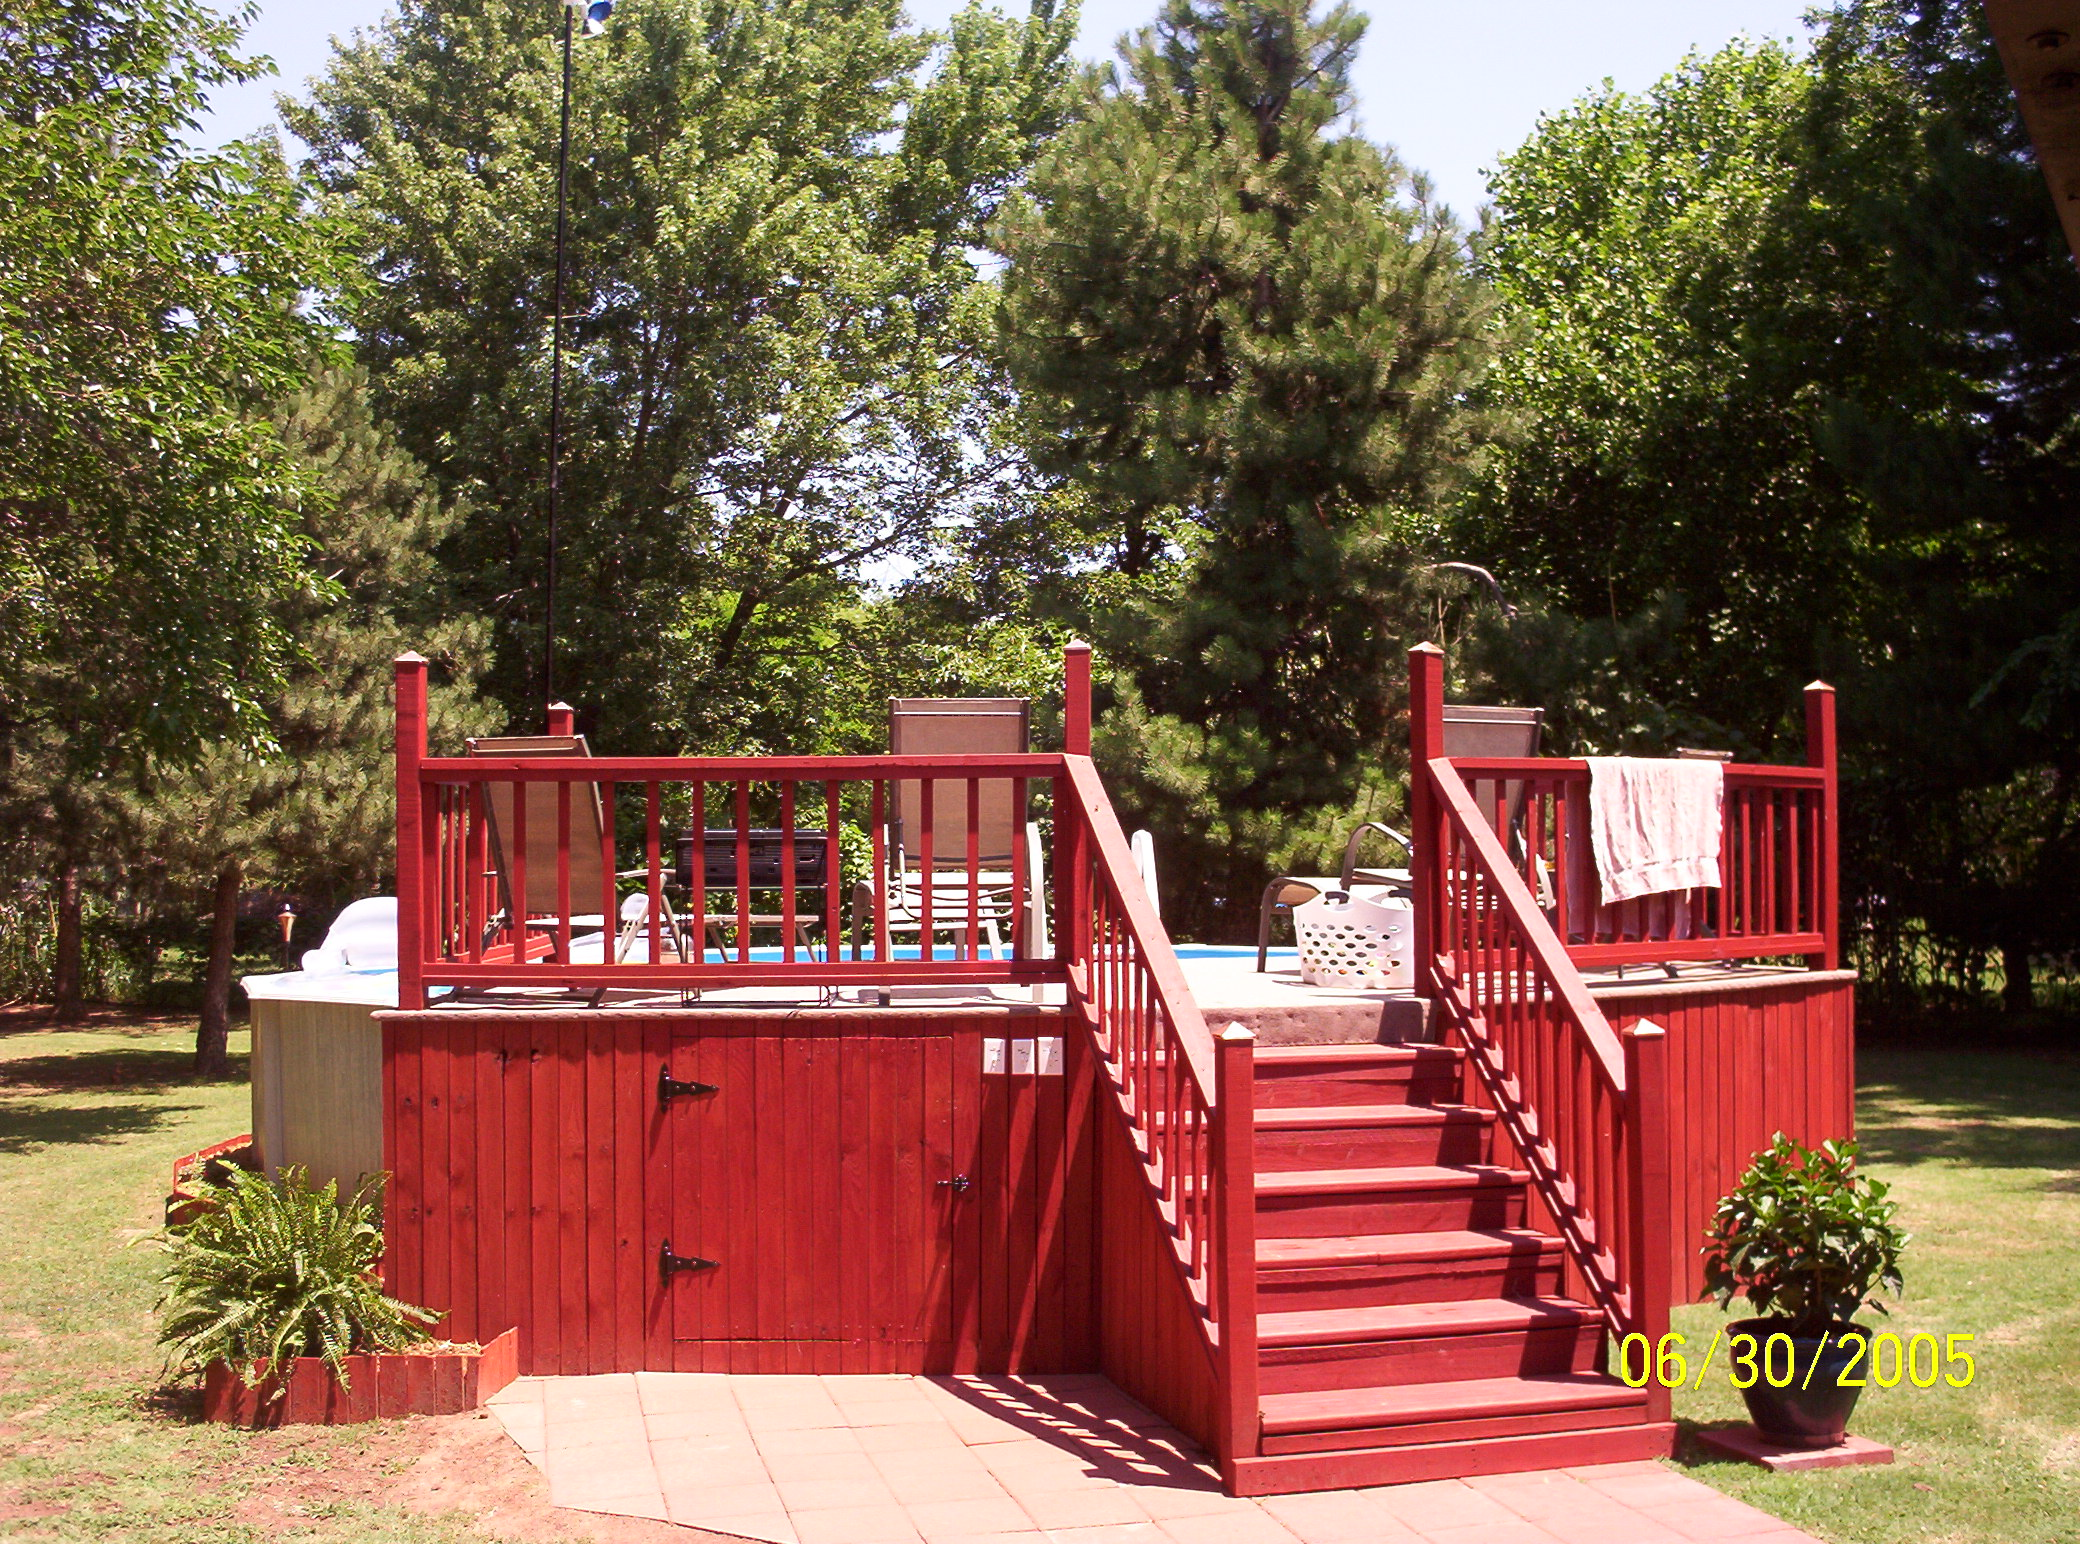 Pool U0026 Backyard Designs: Above Ground Pool Decks Red Fence, Above Groun Pool  Deck, Above Ground Decks Around Pool,